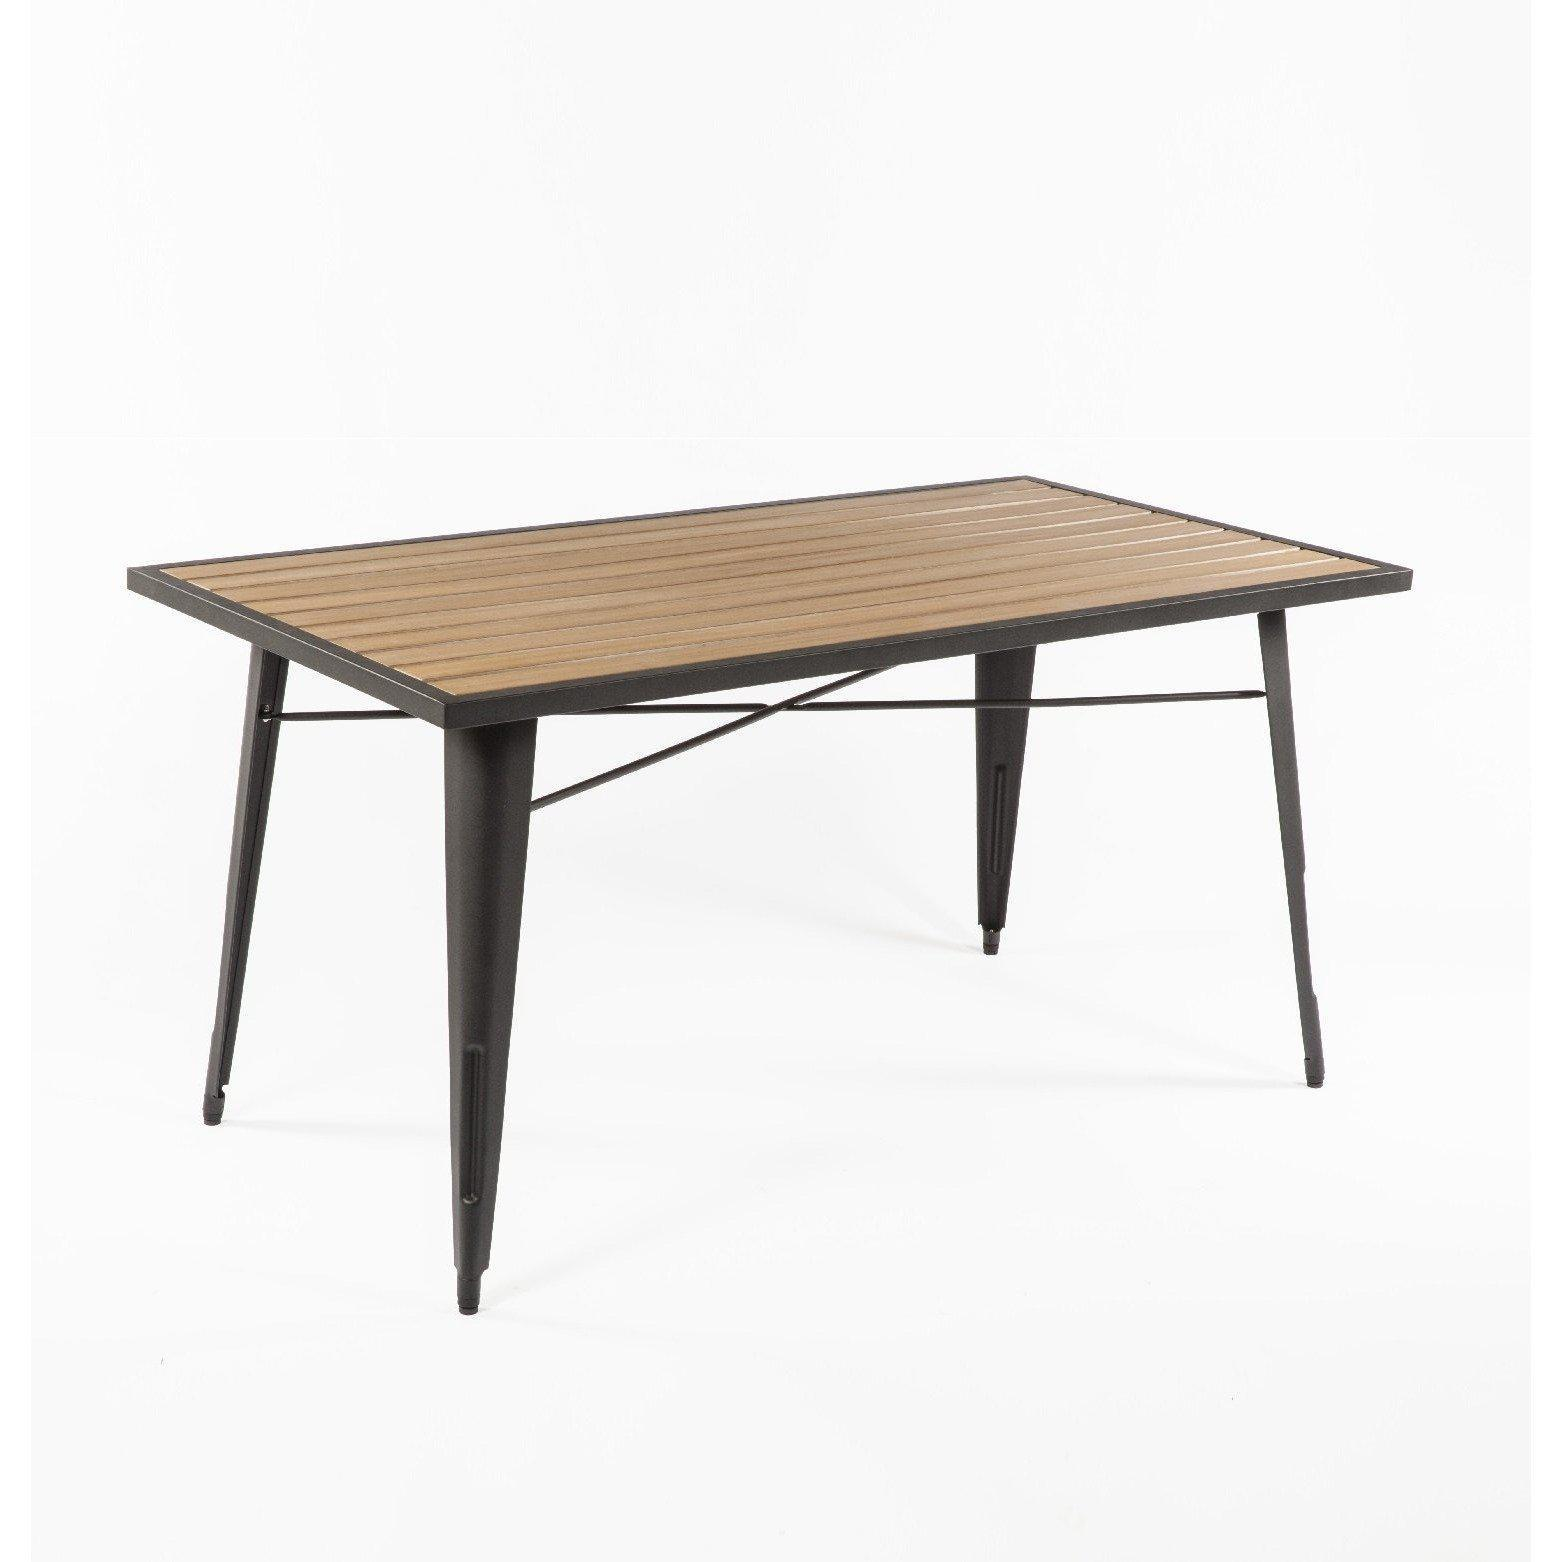 [FKT002NATURAL] The Good Form French Outdoor Table SALE